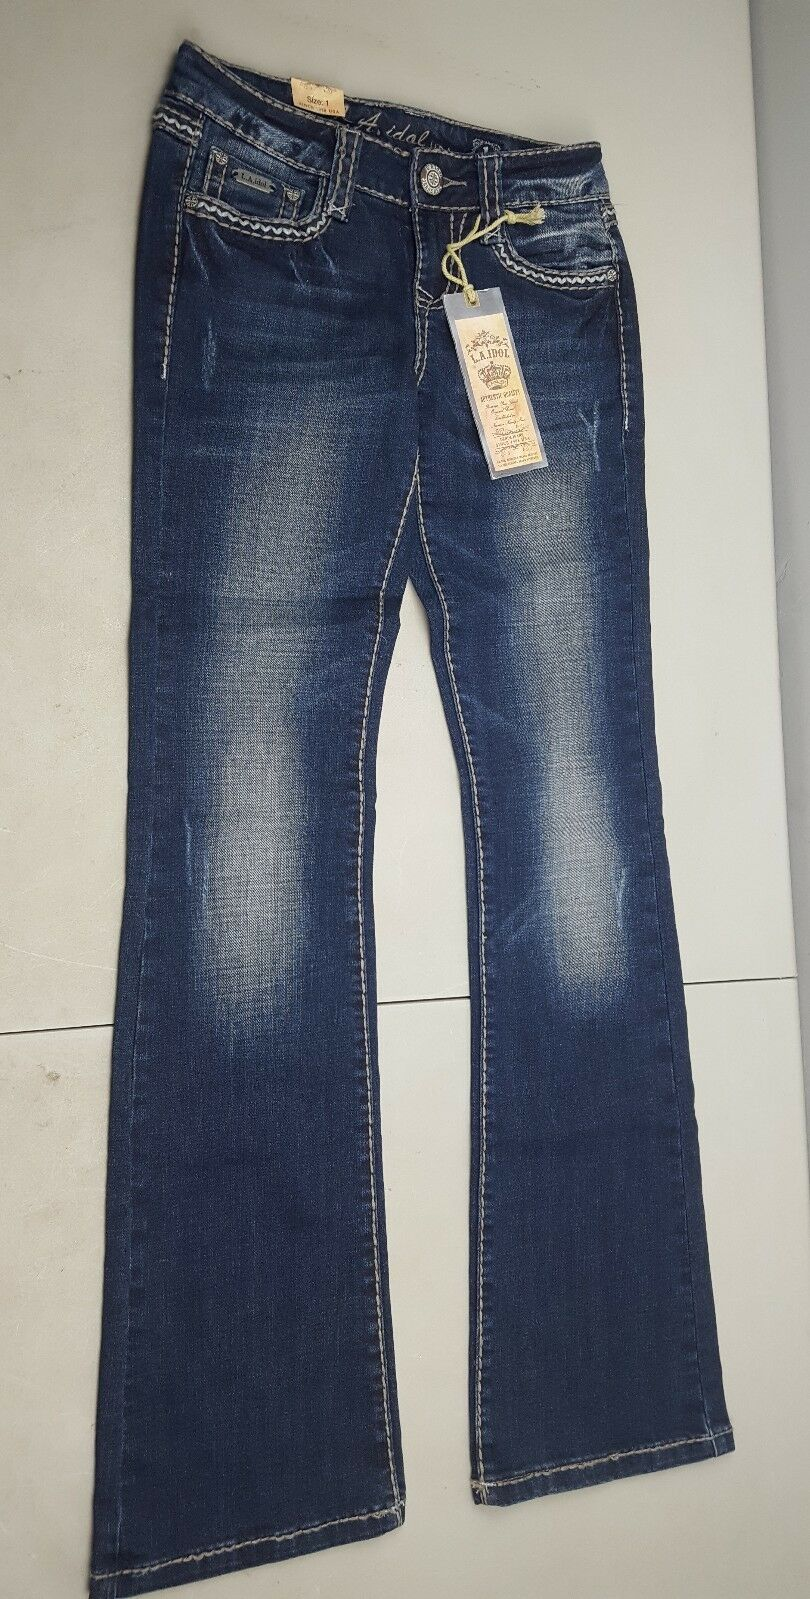 New with tag La Idol USA Factory faded Fashion bluee Jeans juniors Size 1 27w 33l